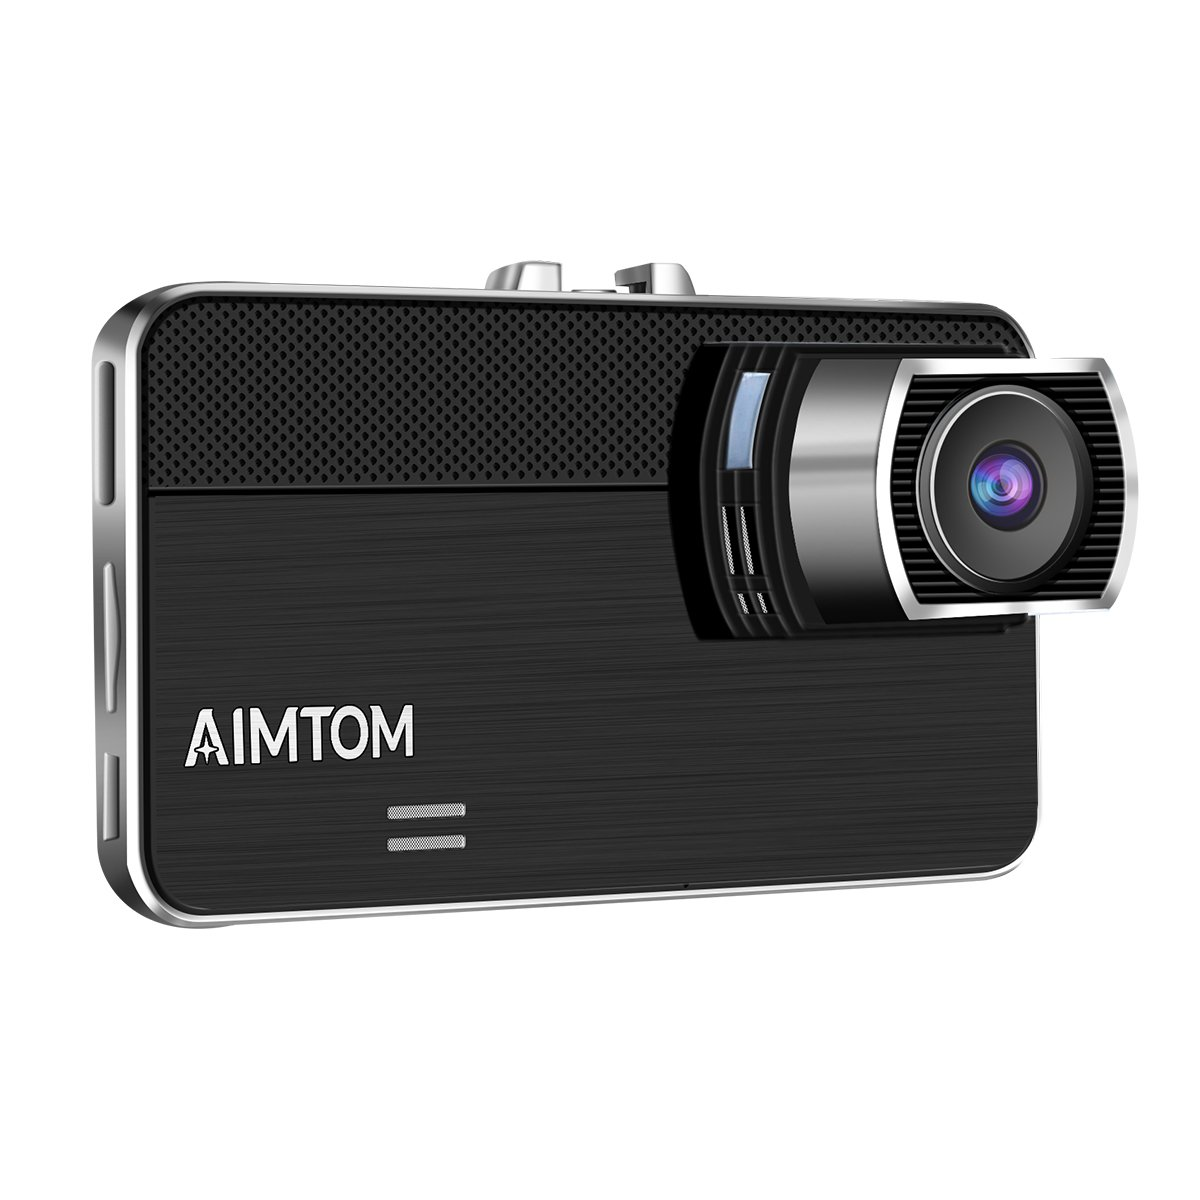 AIMTOM SL-7 Dash Cam, Car Camera Recorder HD 1080P with 2.7' Screen, 170 Degree Wide View Angle High-resolution Lens Dashboard Car DVR Built-In G-Sensor, WDR, Loop Recording, Night Vision, Motion Detection, Parking Guard